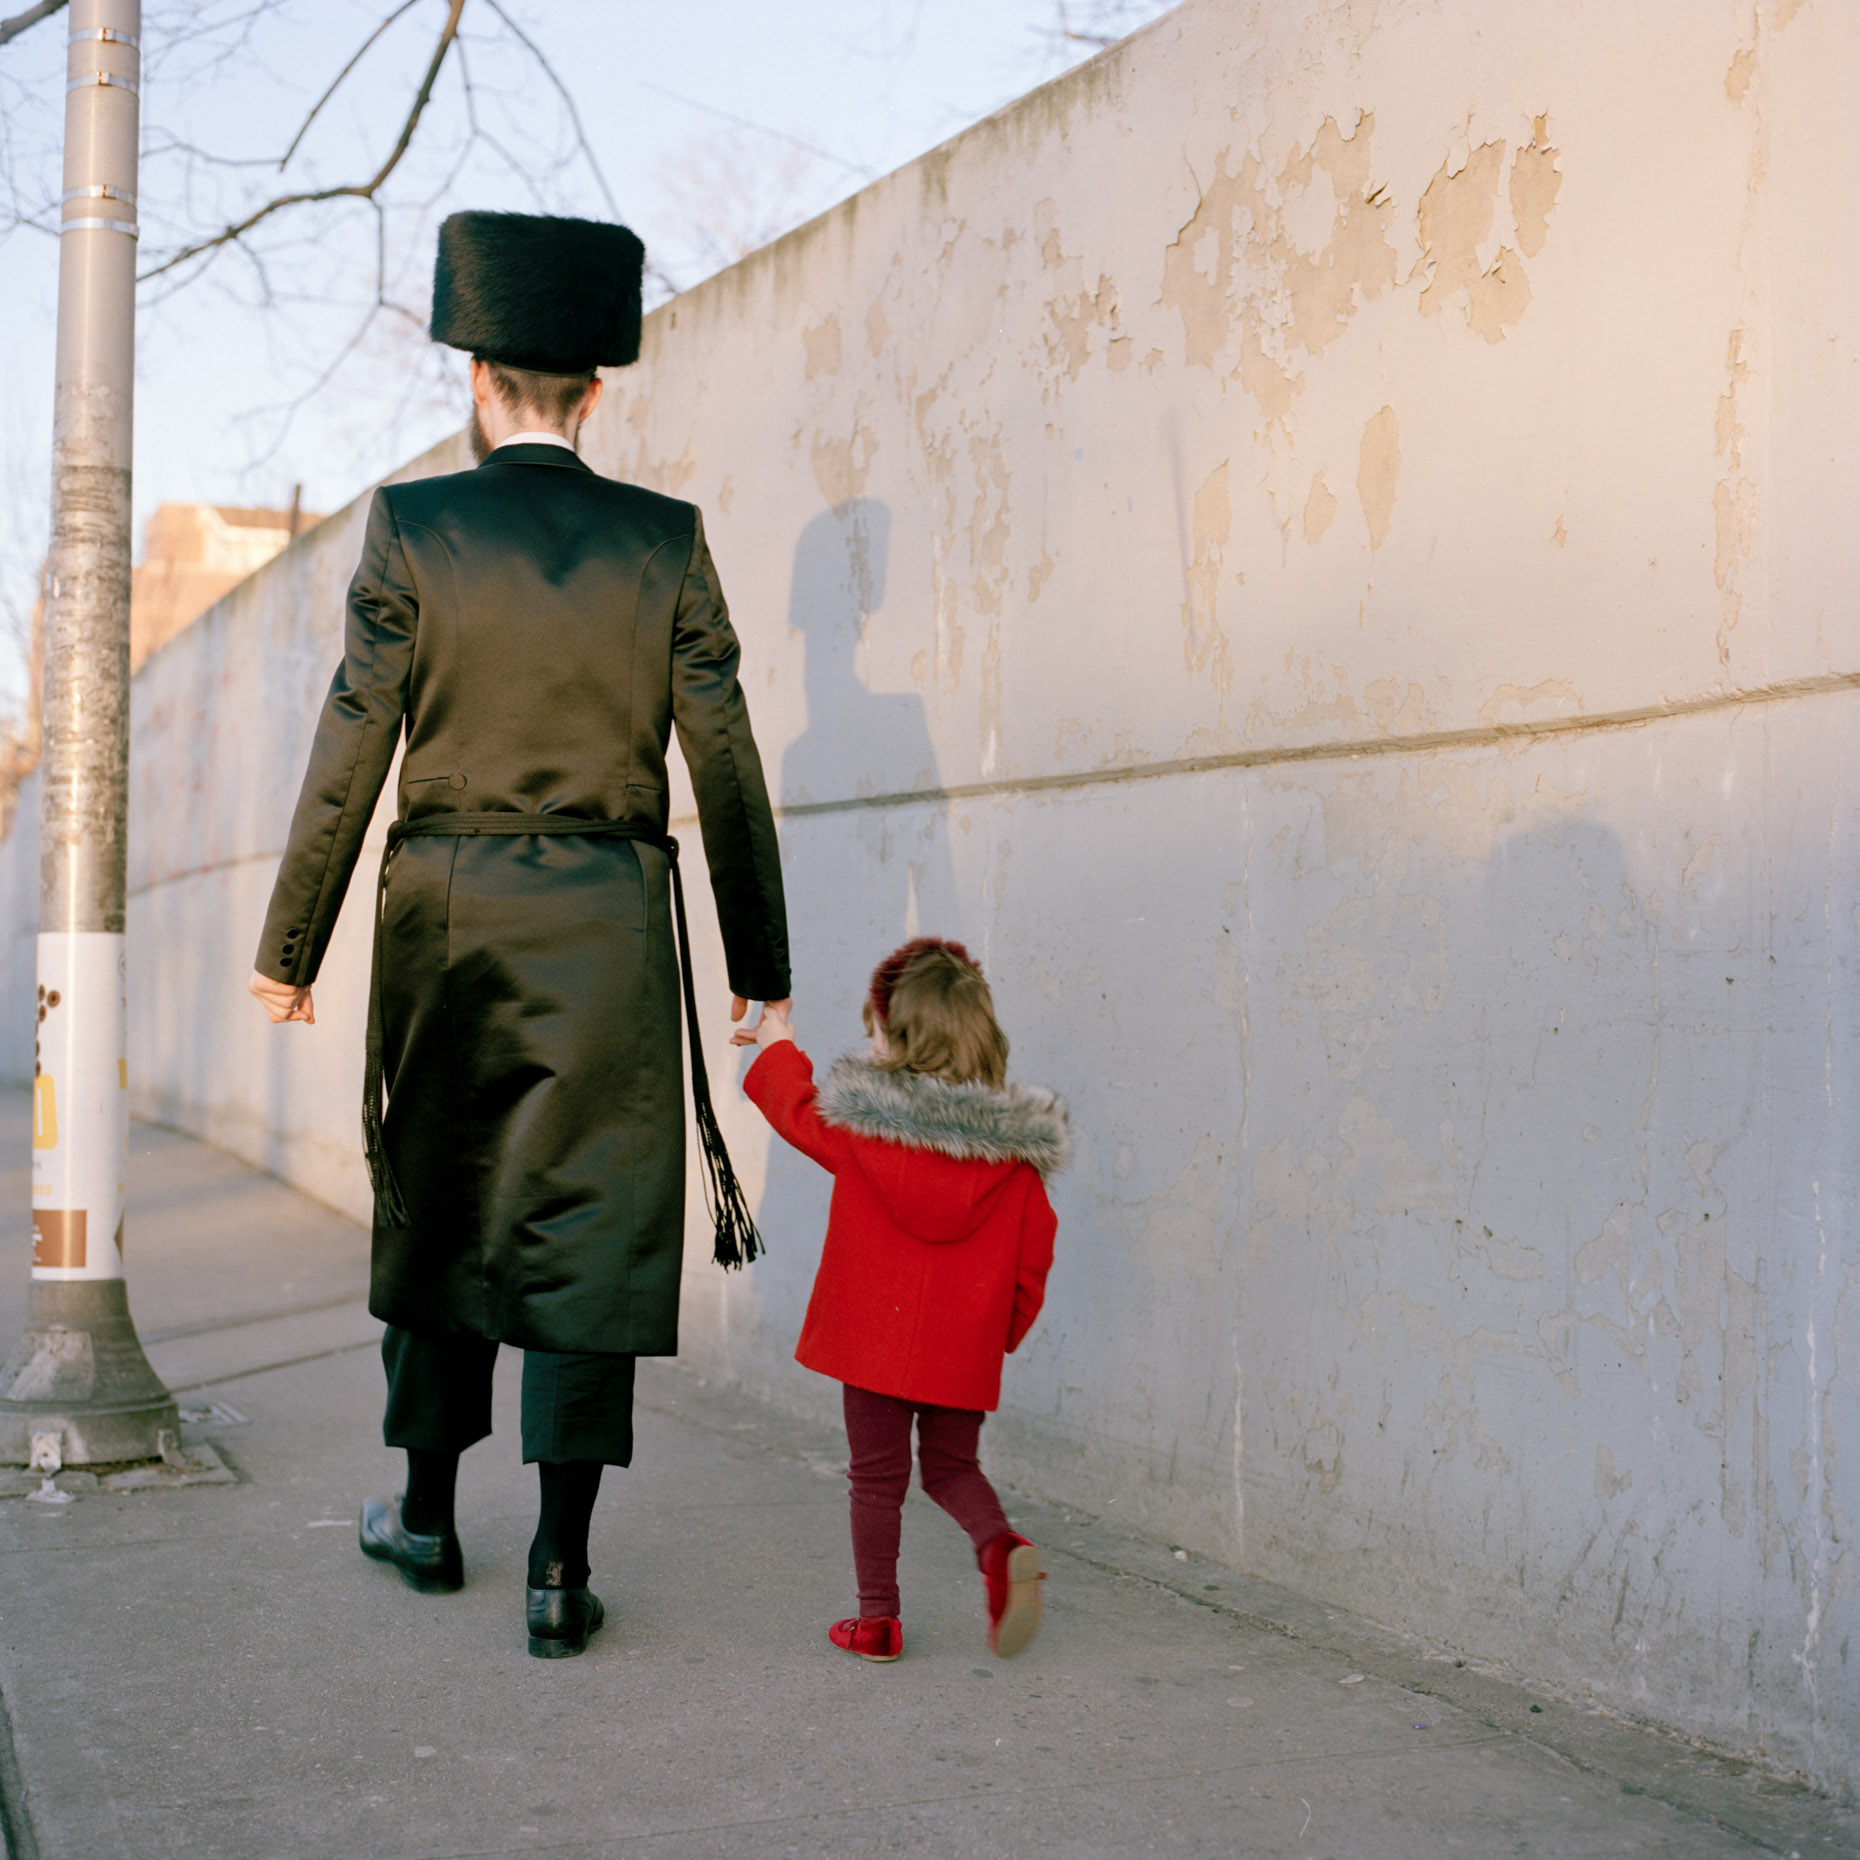 An Orthadox Jewish man holds his daughters hand as he walks through Borough Park, Brooklyn, New York City